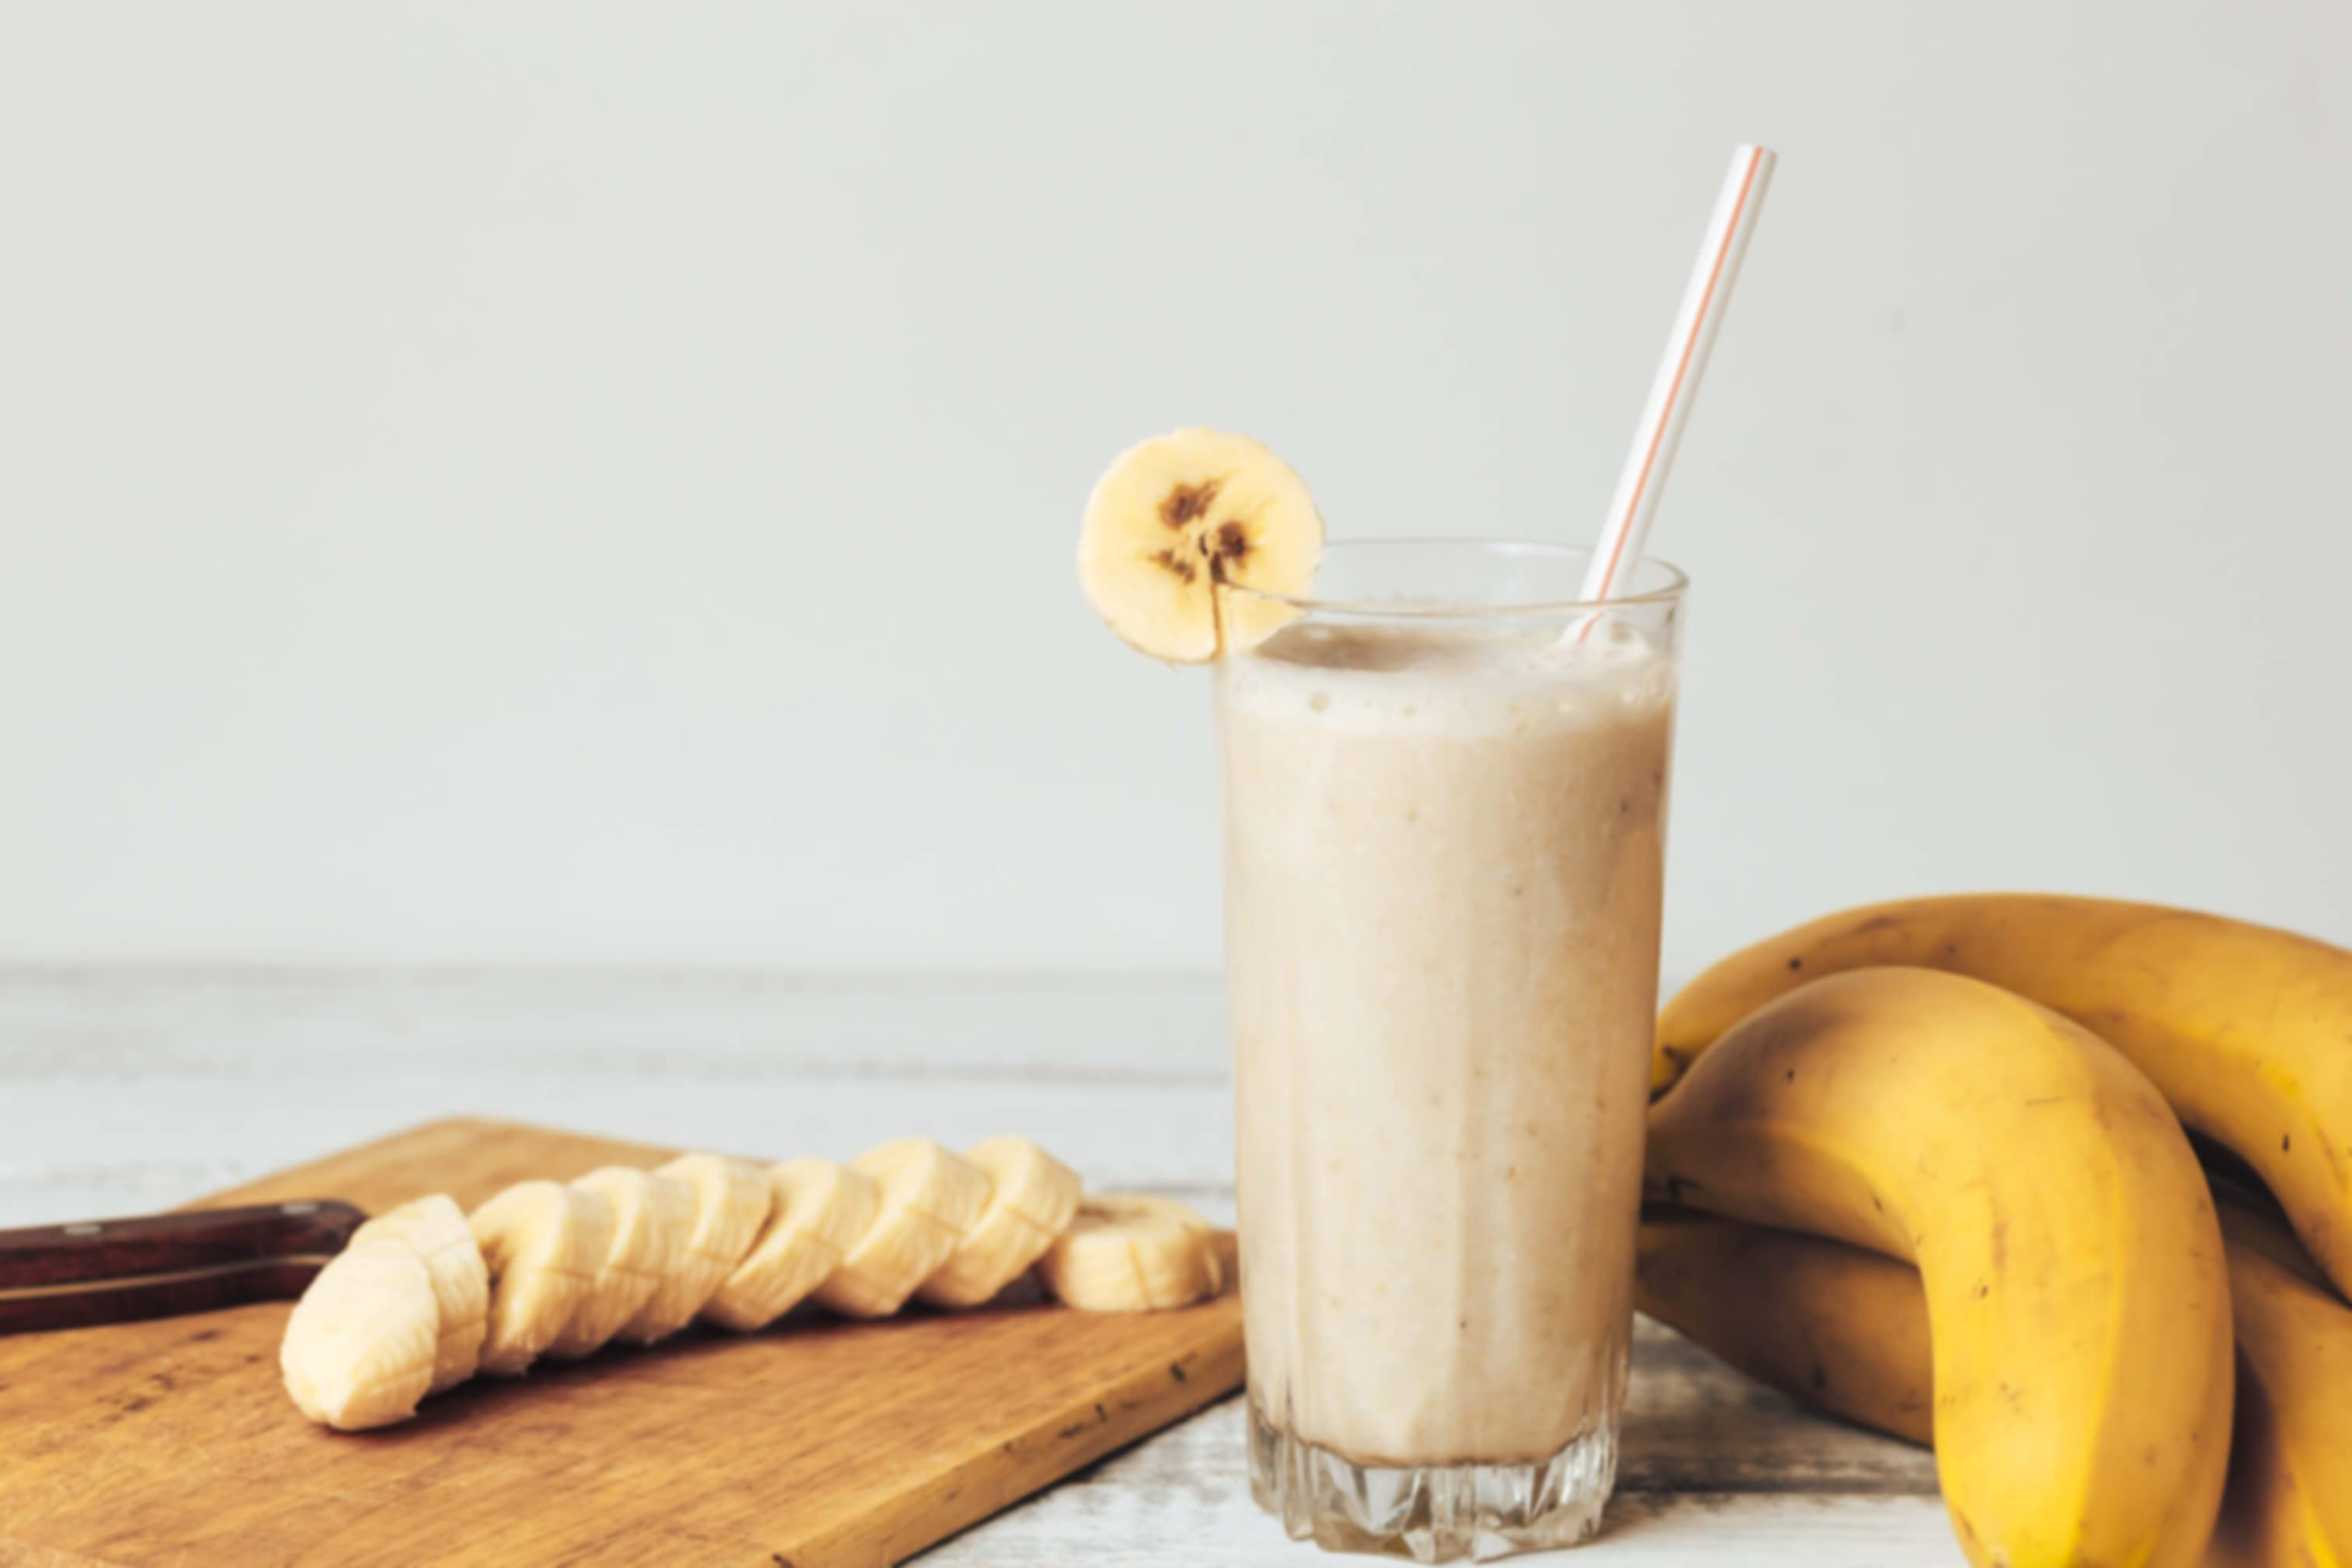 Smoothie in a glass with a straw. Sliced and whole banana surrounding.